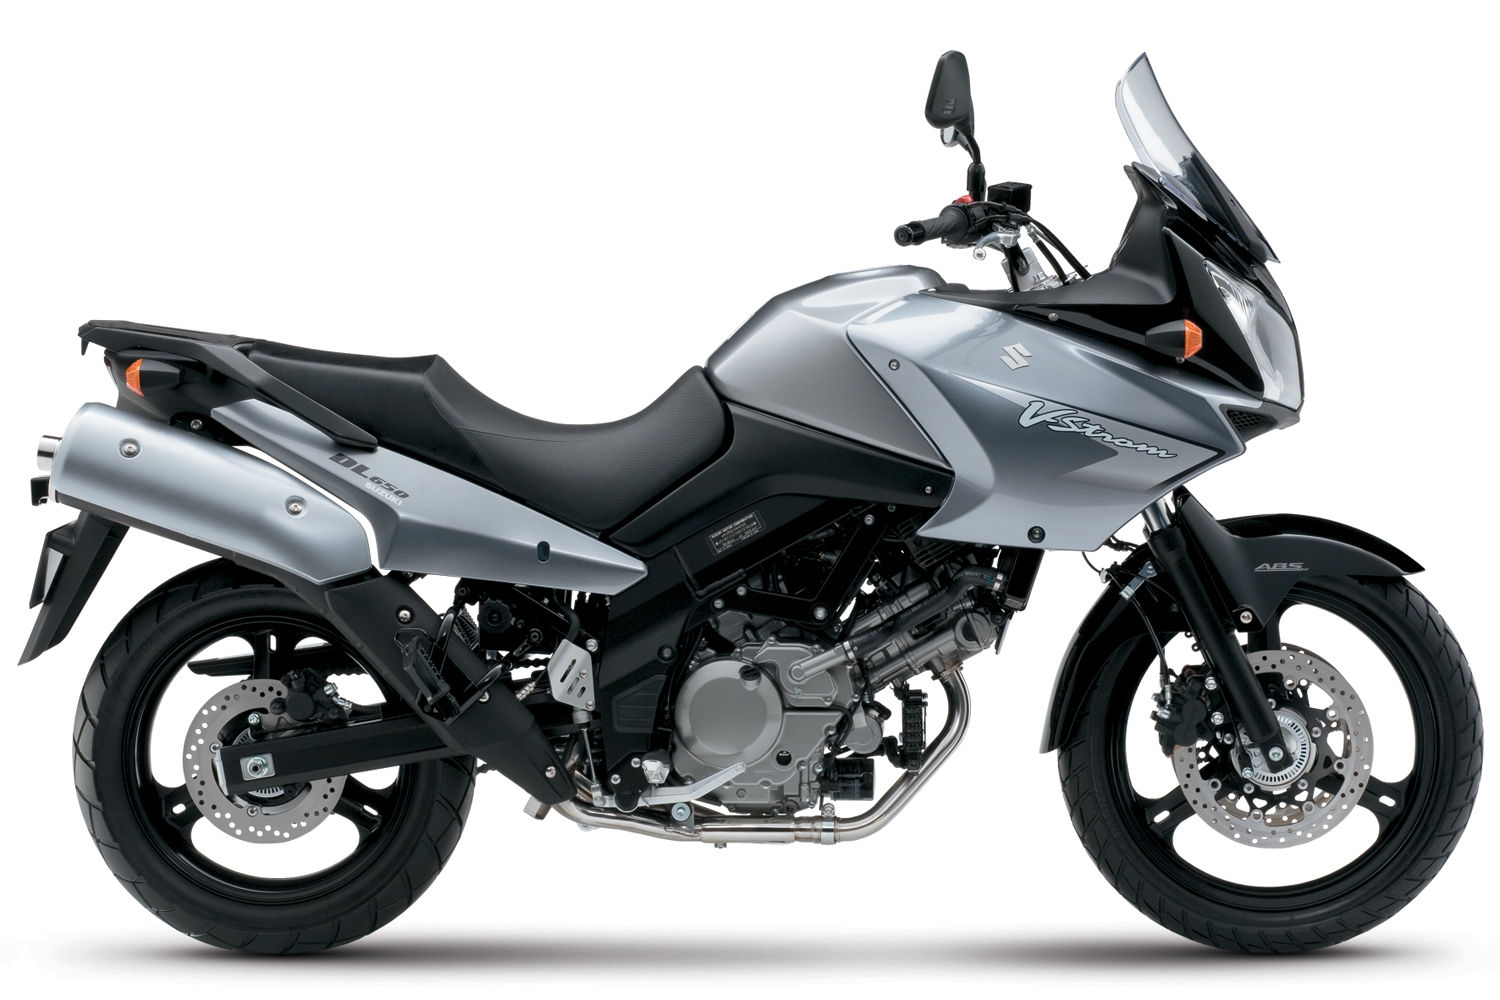 2005 Suzuki DL650 V-Strom Service Manual